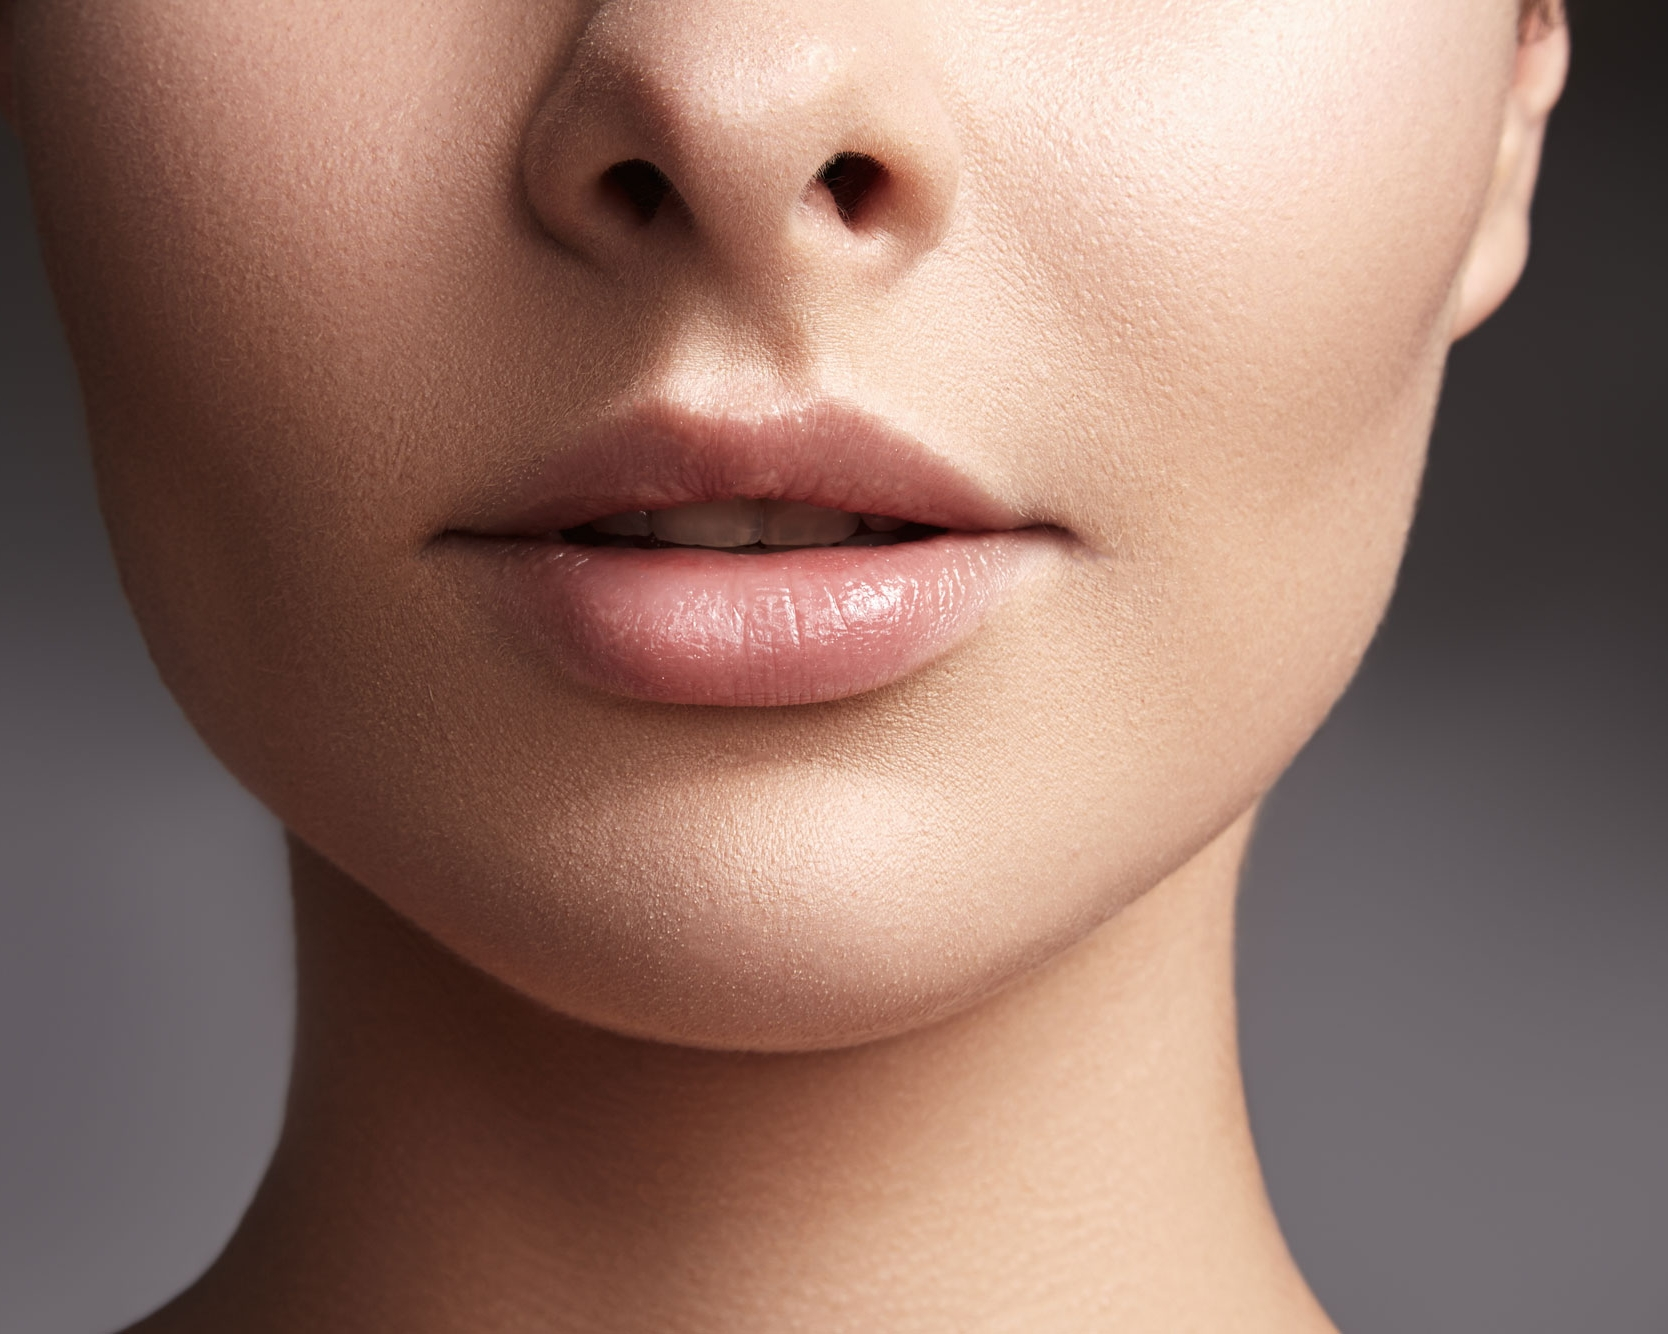 JUVÉDERM®XC - JUVÉDERM®XC is the first and only non-surgical hyaluronic acid (HA)filler FDA-approved to instantly smooth moderate to severe wrinkles around your nose and mouth for up to one year with optimal treatment.